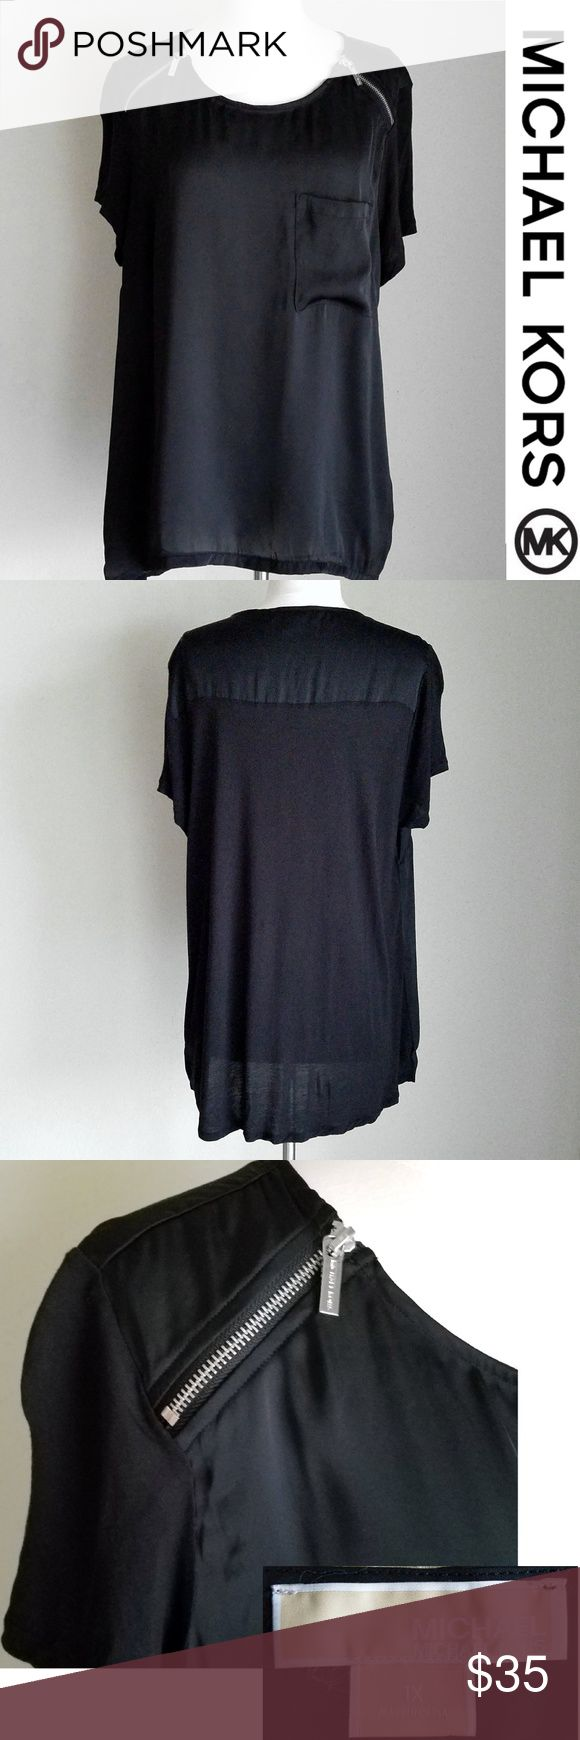 """Michael Kors Black Silky & Knit Zipper Top- Plus Front and top back are silky material. Sleeves and bottom back are thin knit material. Silver Michael Kors name zippers on shoulders. Slight high-low hem. Short sleeve. Machine wash, Line dry. Front- 100% rayon, Back- 100% polyester  Gently used condition (very slight wear from washing)  Plus size 1X. Length (shoulder to bottom- longer in back)- 27.5""""-30"""", Bust- 44"""", Waist- 44"""", Hip- 46"""" Michael Kors Tops Blouses"""